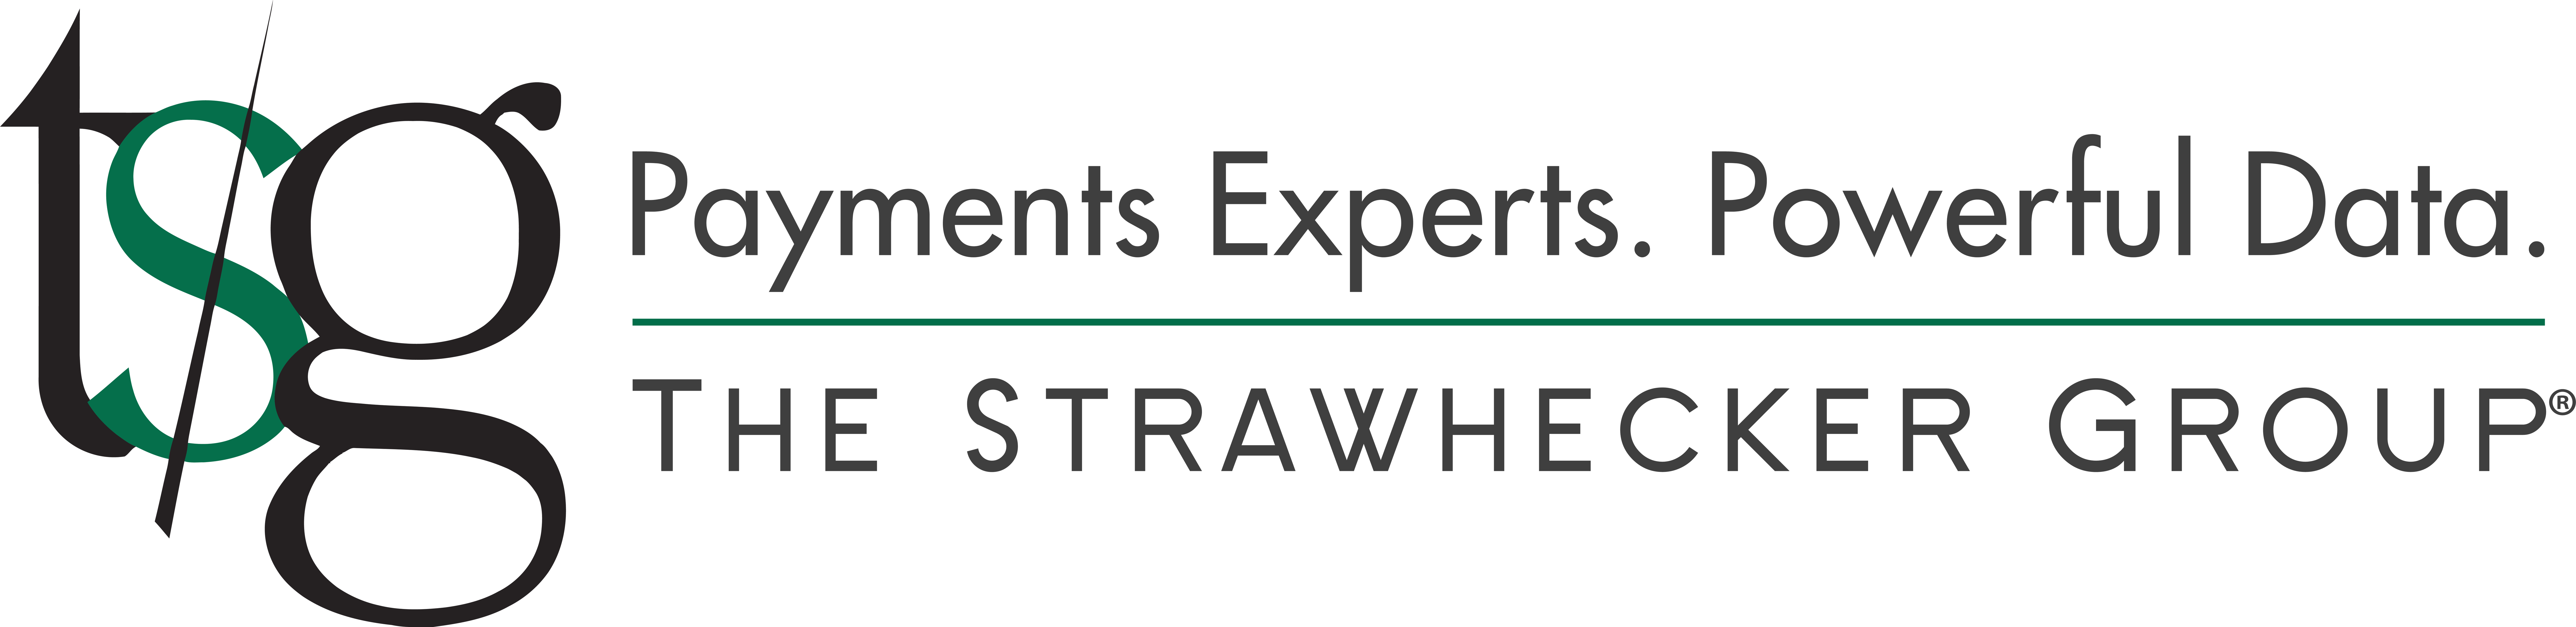 The Strawhecker Group Outlined JPG